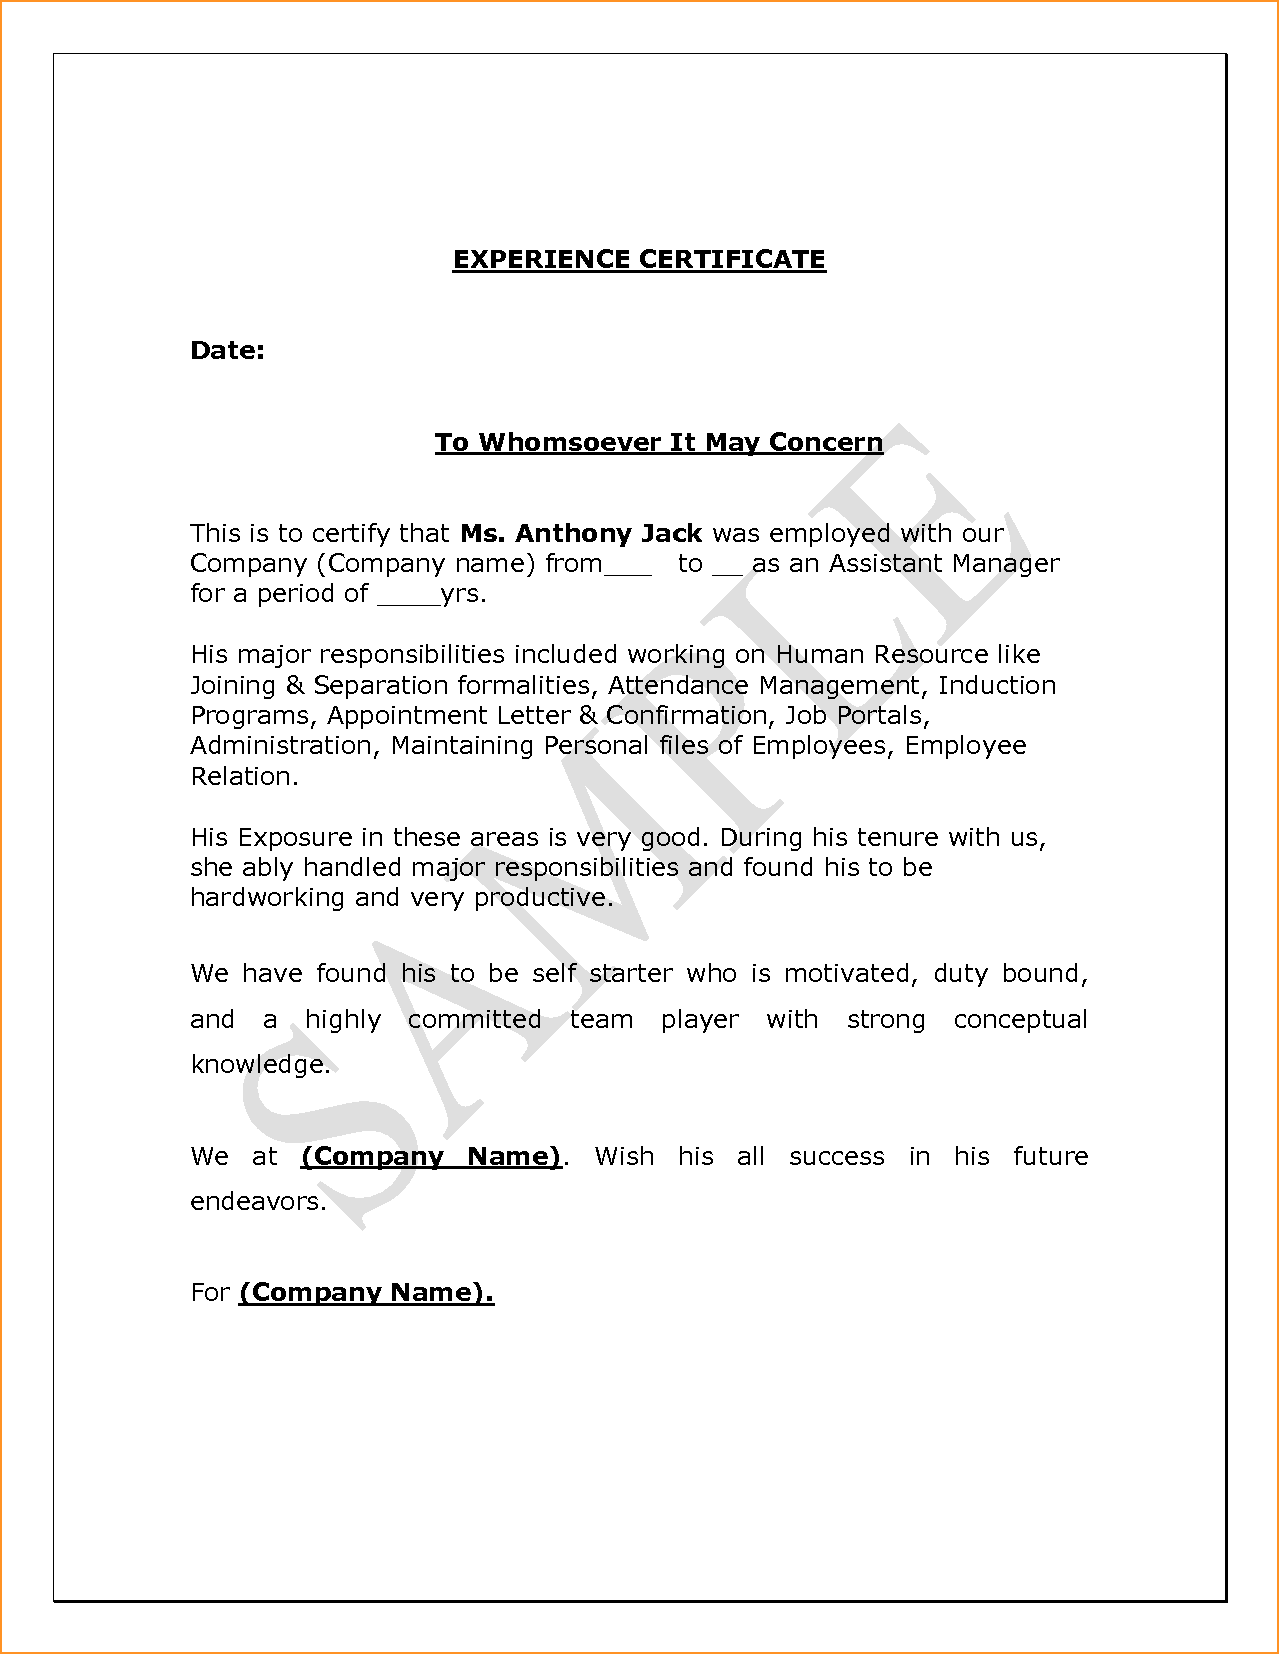 Employment Separation Certificate Form Amusing Letter Format Experience Appointment Sample For Excel Pdf And Word .